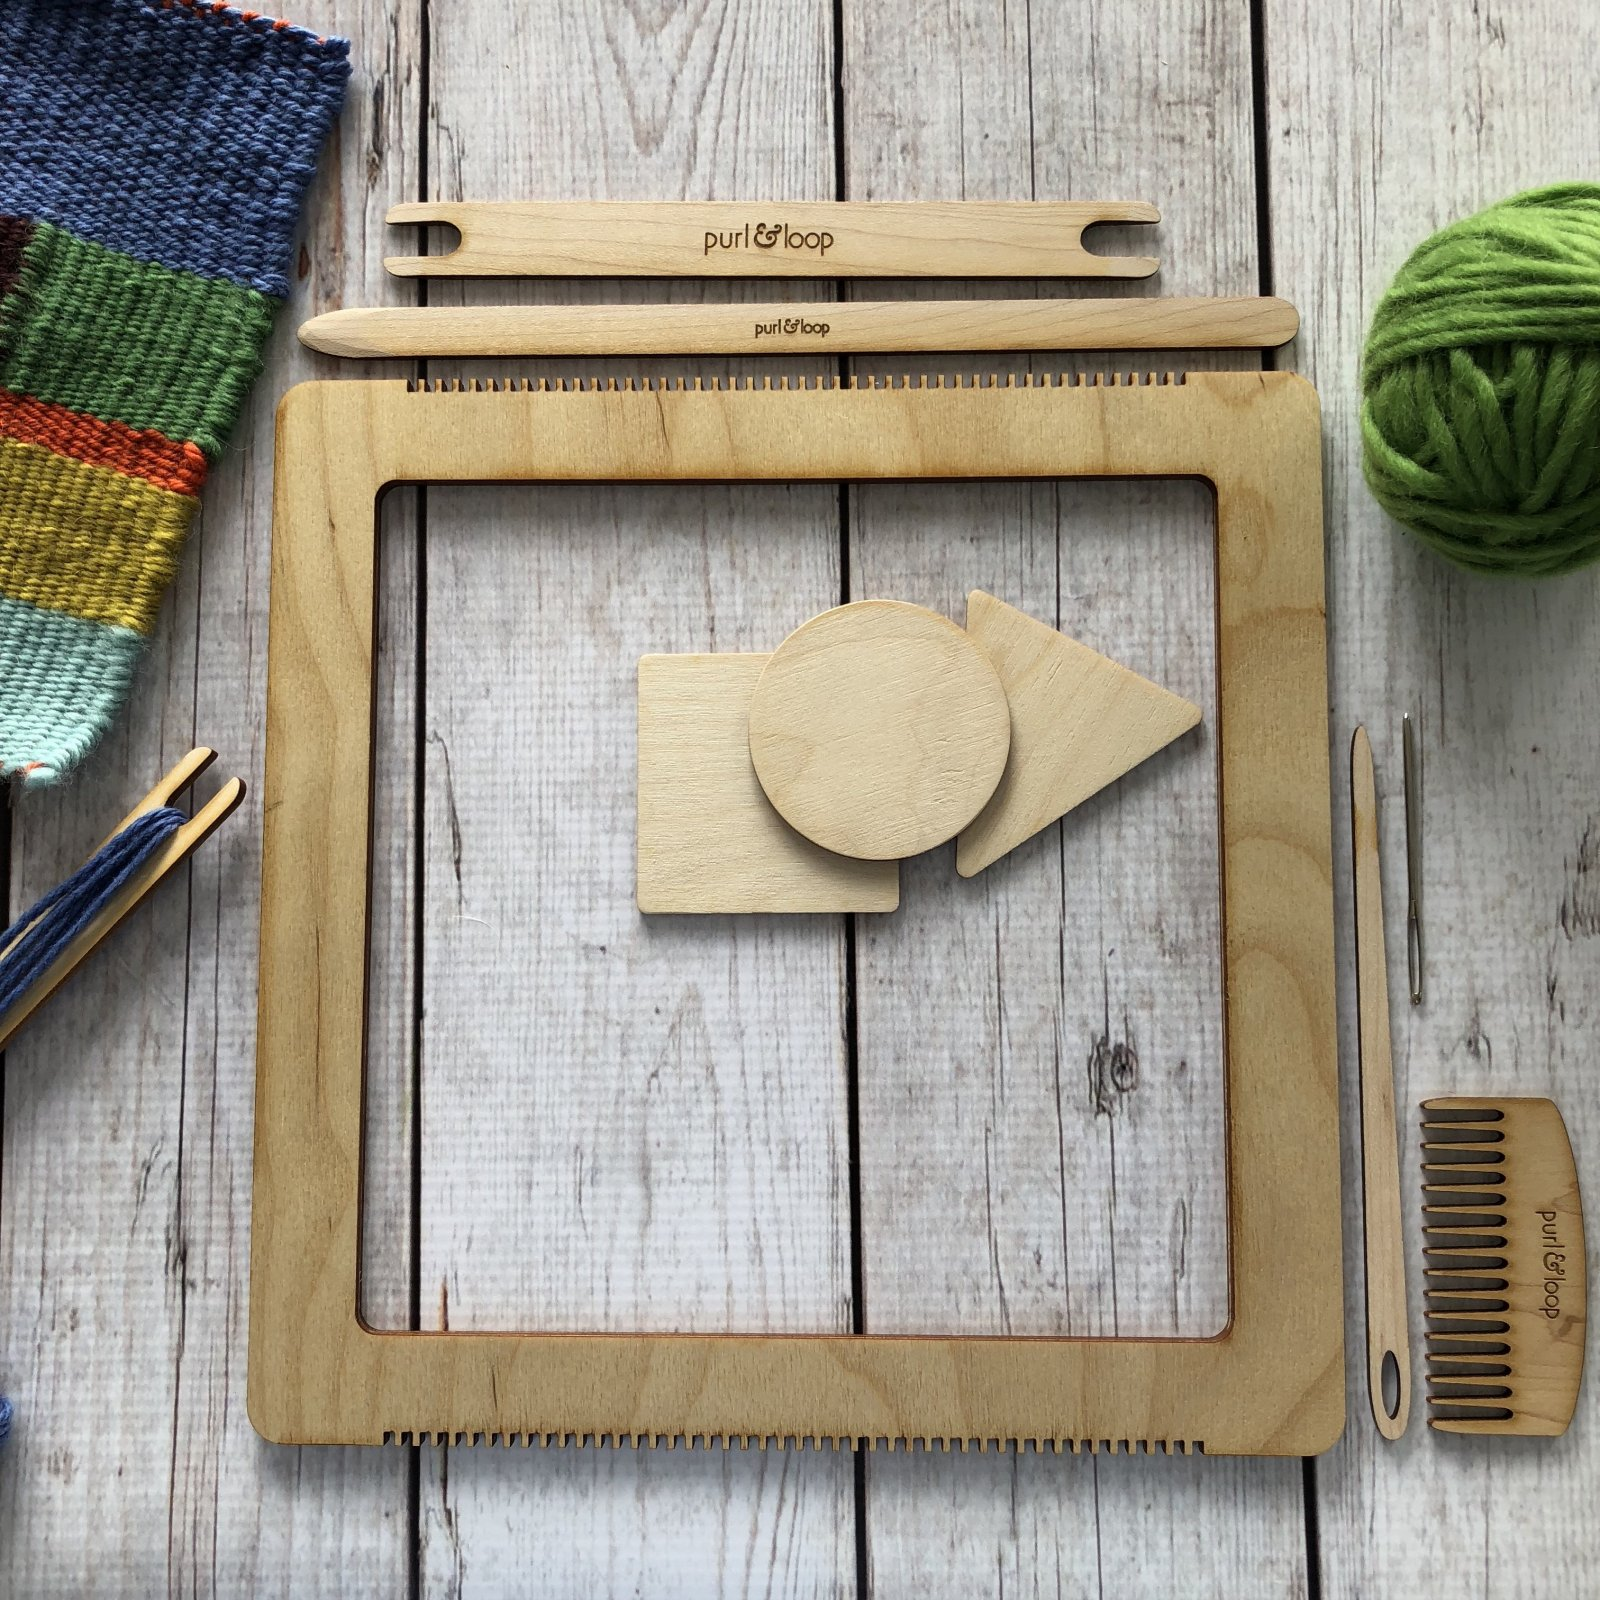 10 Inch Portable Square Frame Weaving Loom